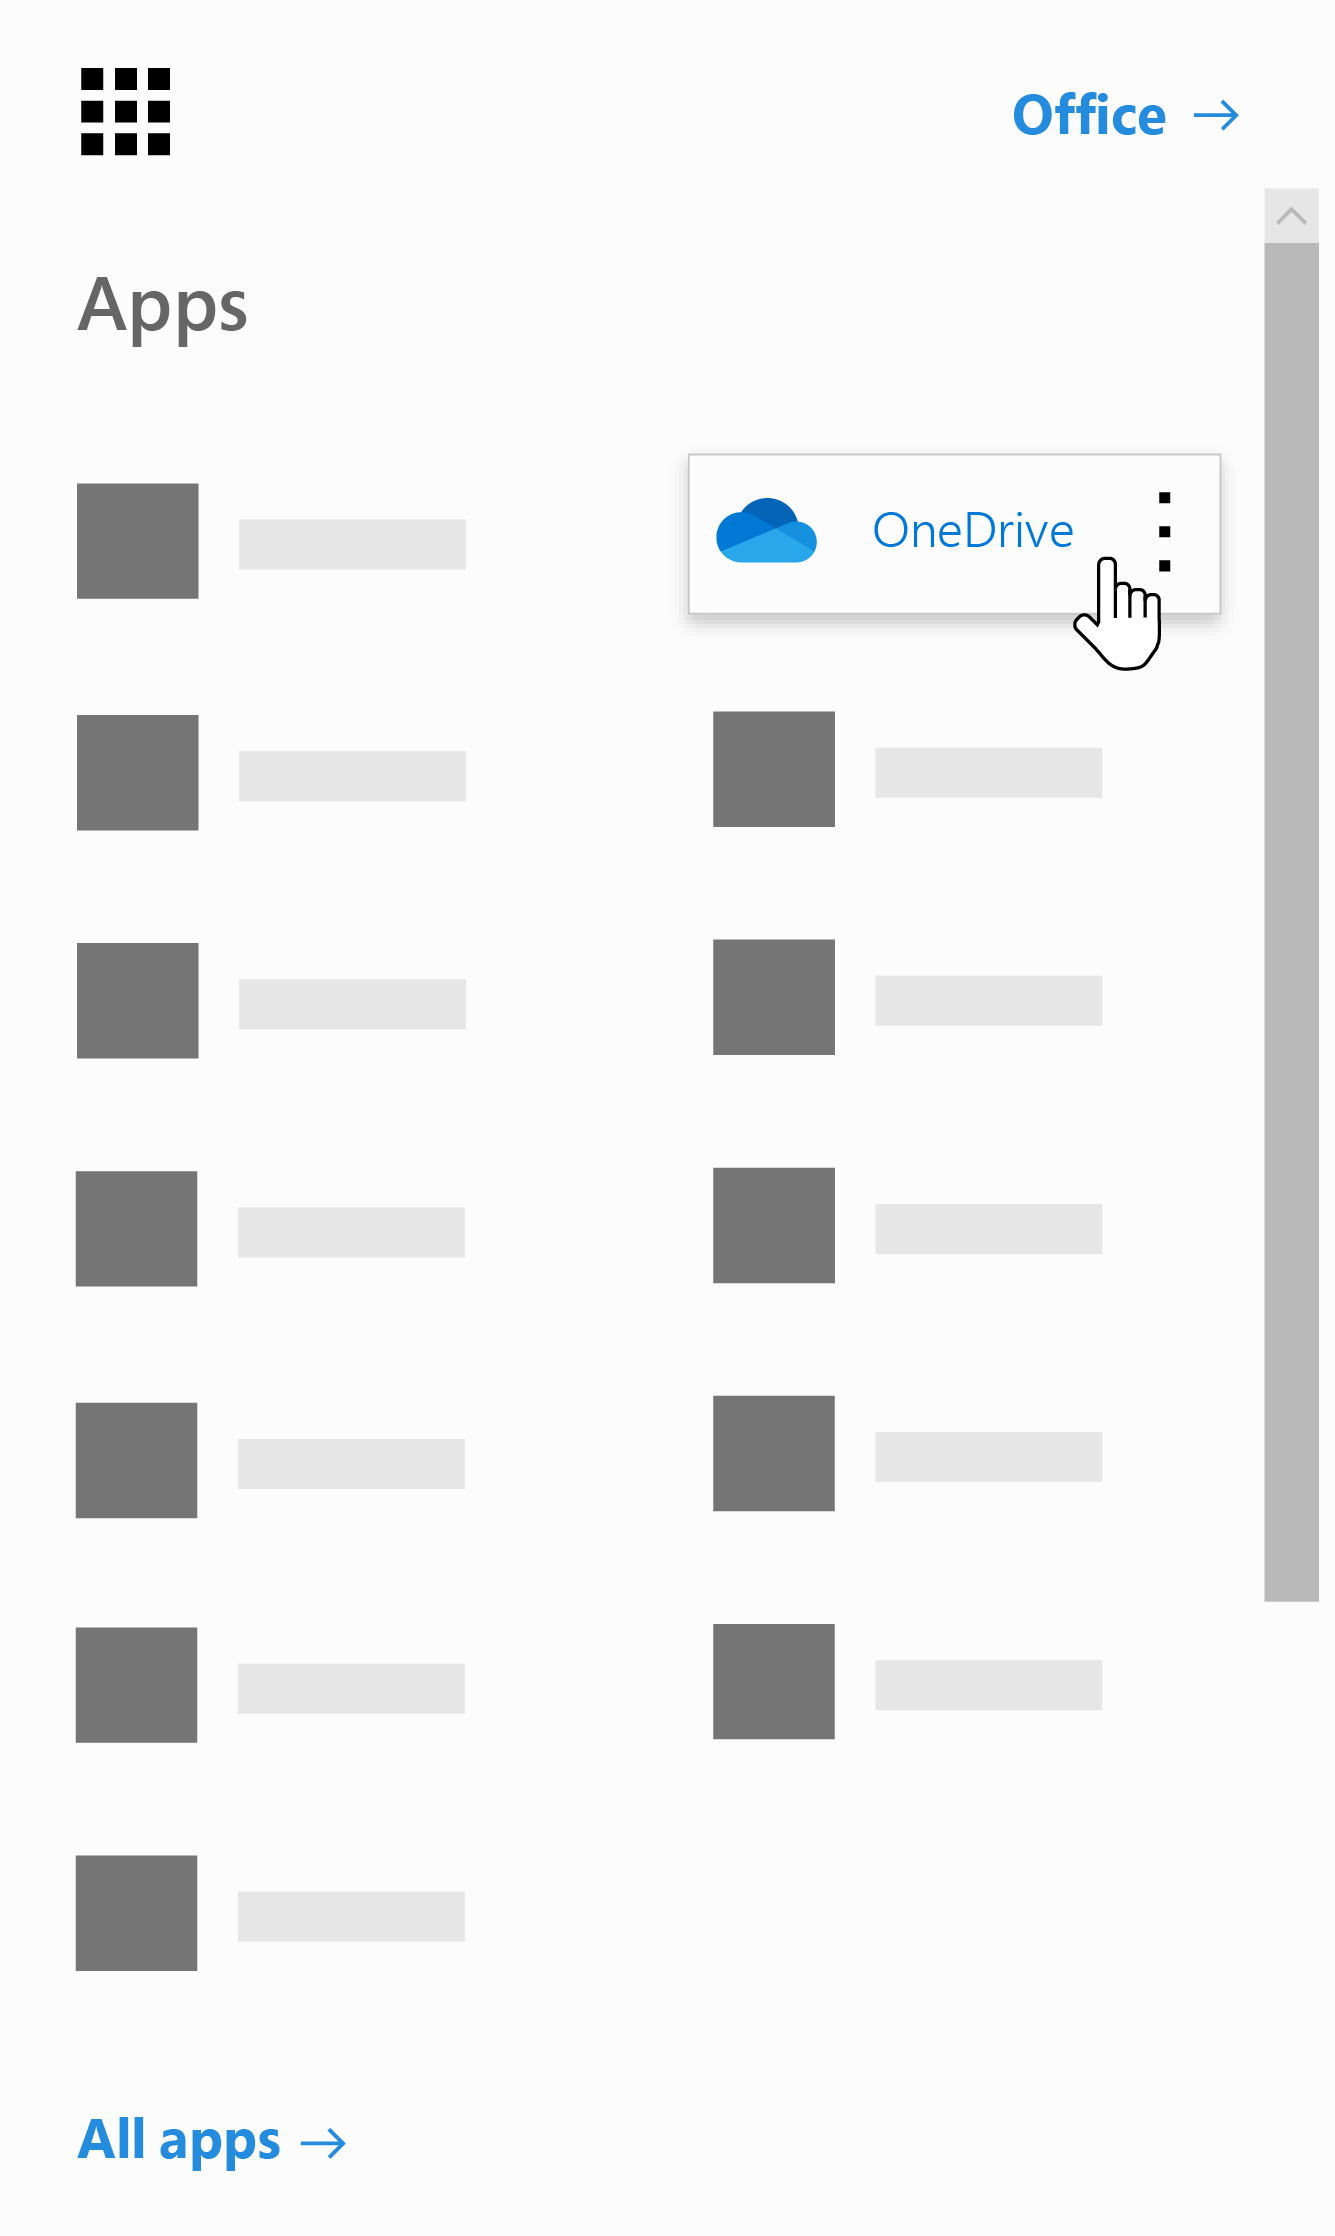 The Office 365 app launcher with the OneDrive app highlighted